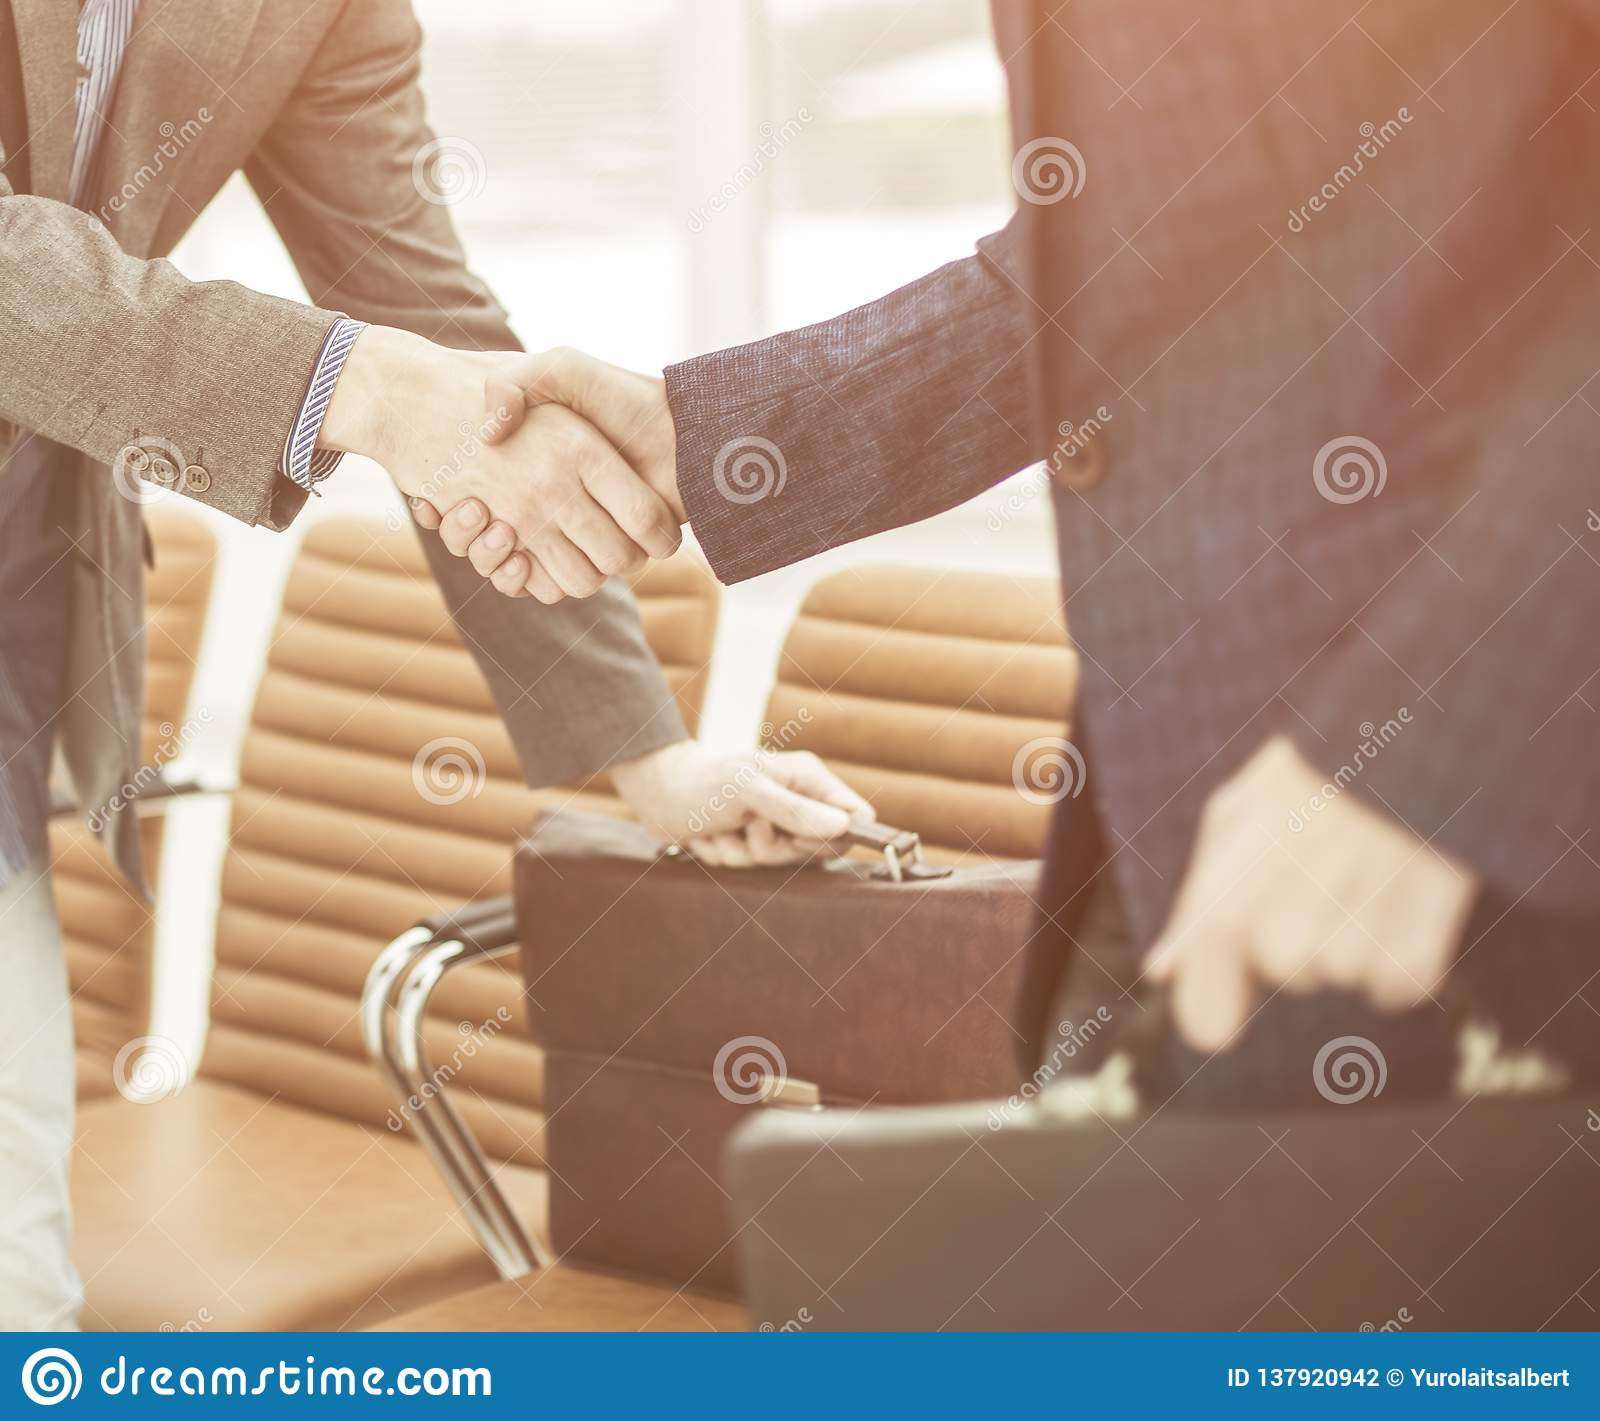 Employees of the company with briefcases shaking hands in the lobby of a modern office